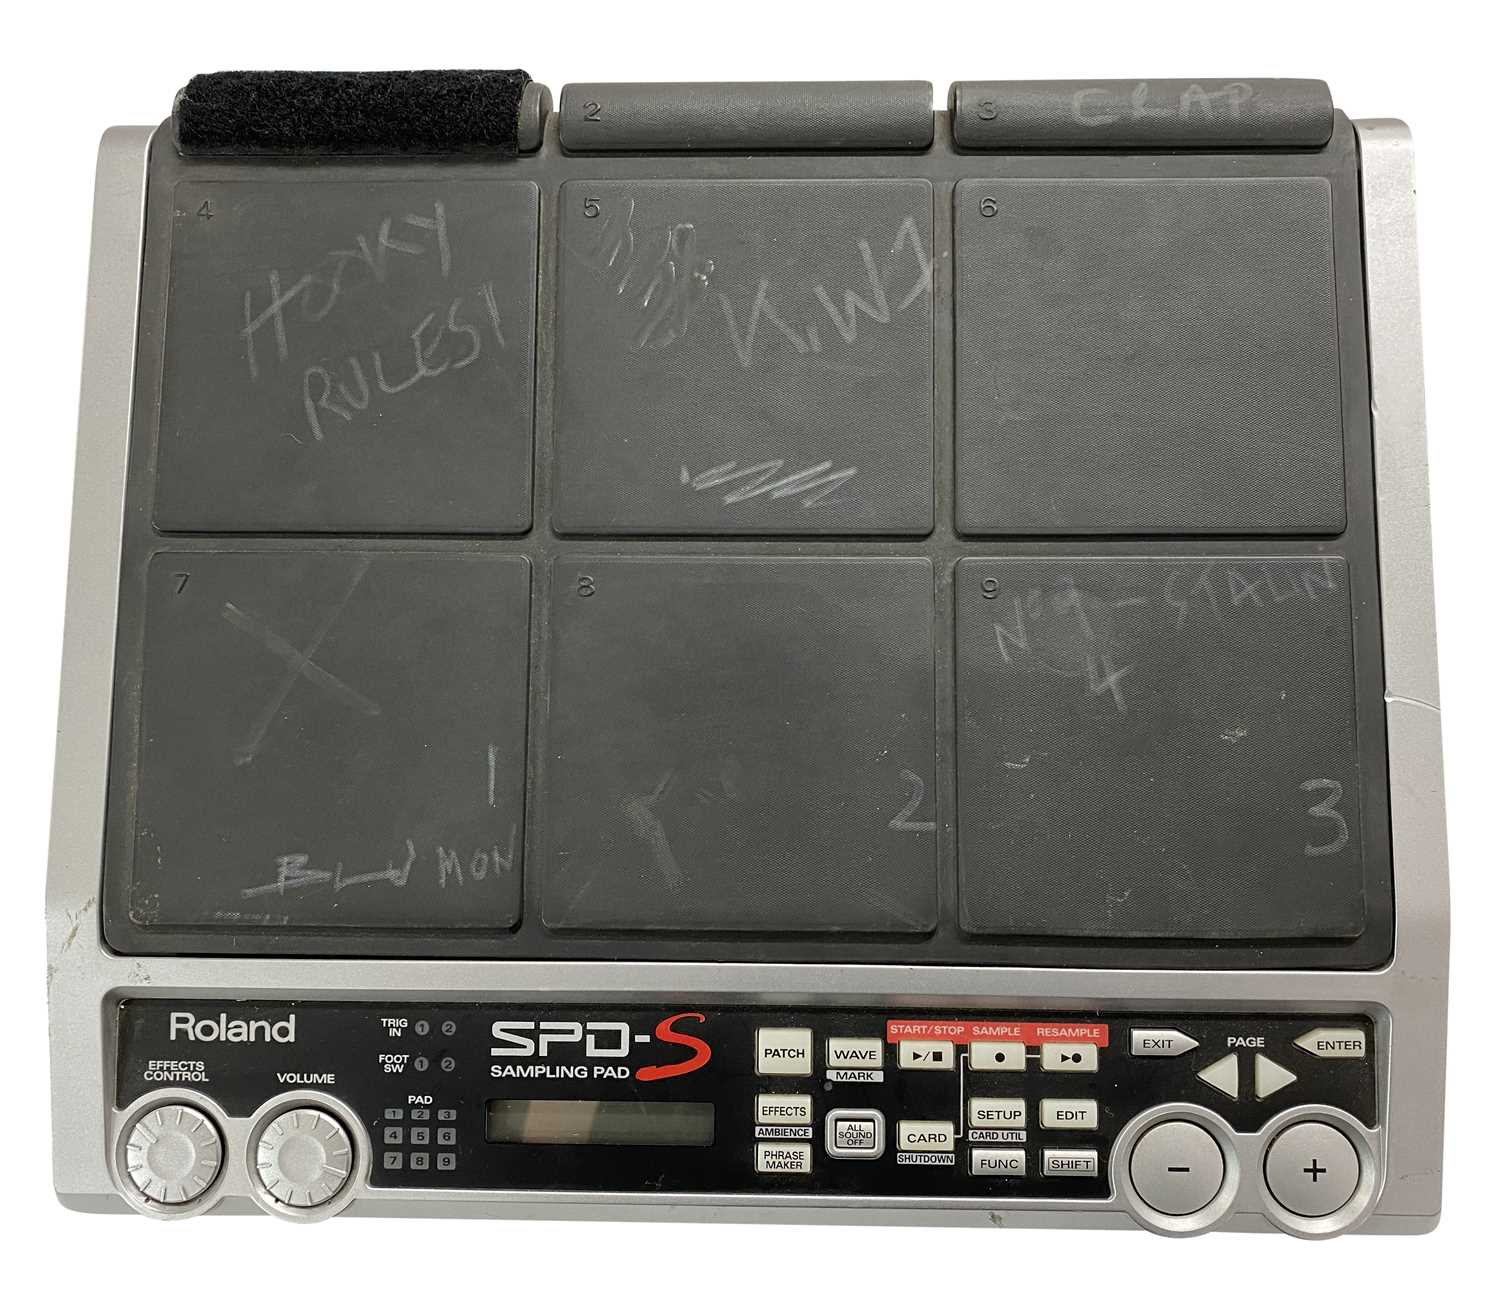 ROLAND DRUM ELECTRONIC SPD-S DRUM SAMPLING PADS x 2 - Image 2 of 4